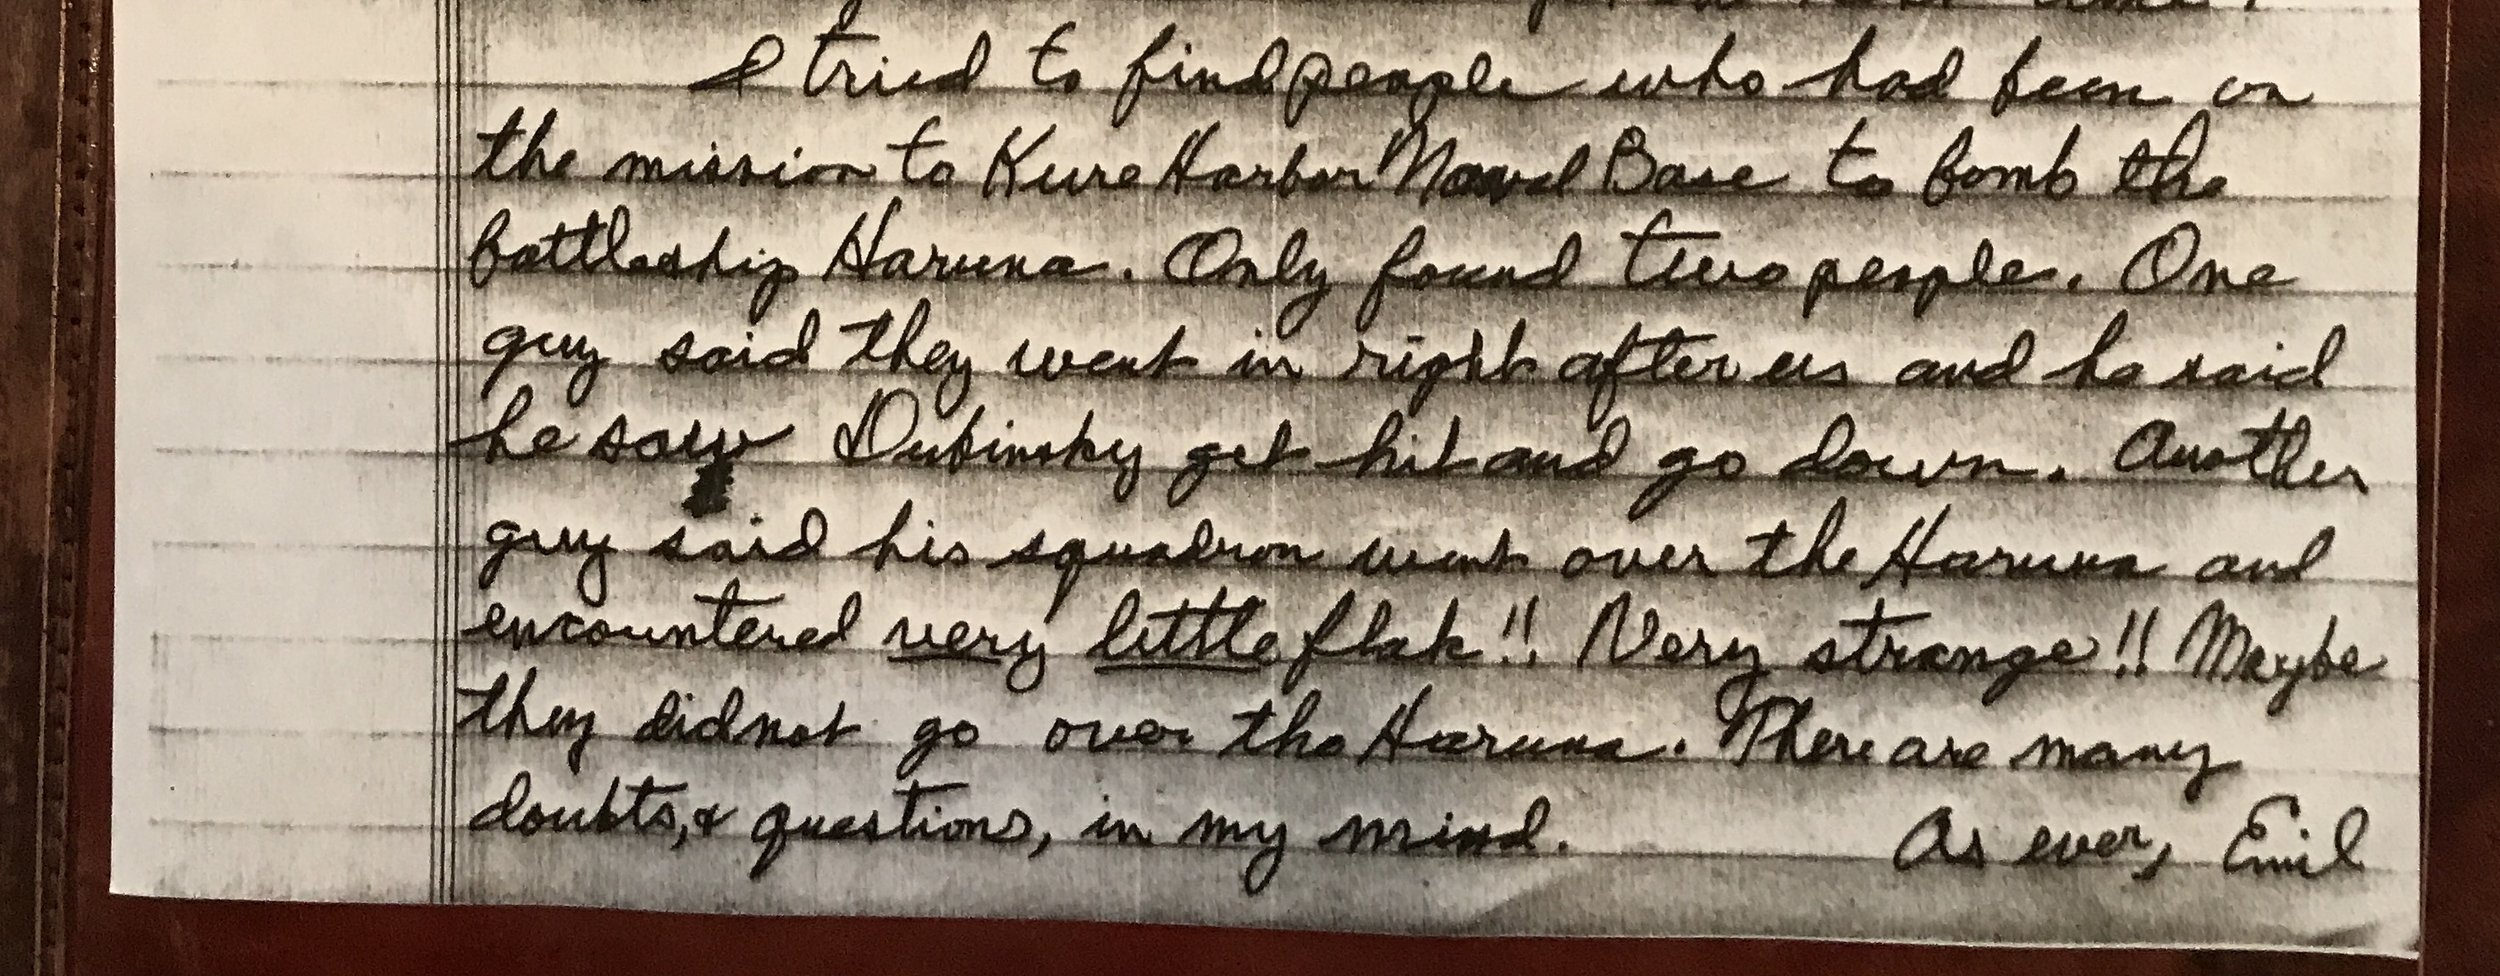 Excerpt from a letter written by Emil Turek in 1988 to his crewmen and others after he attended a 494th BG(H) reunion.Courtesy of Barbara English.